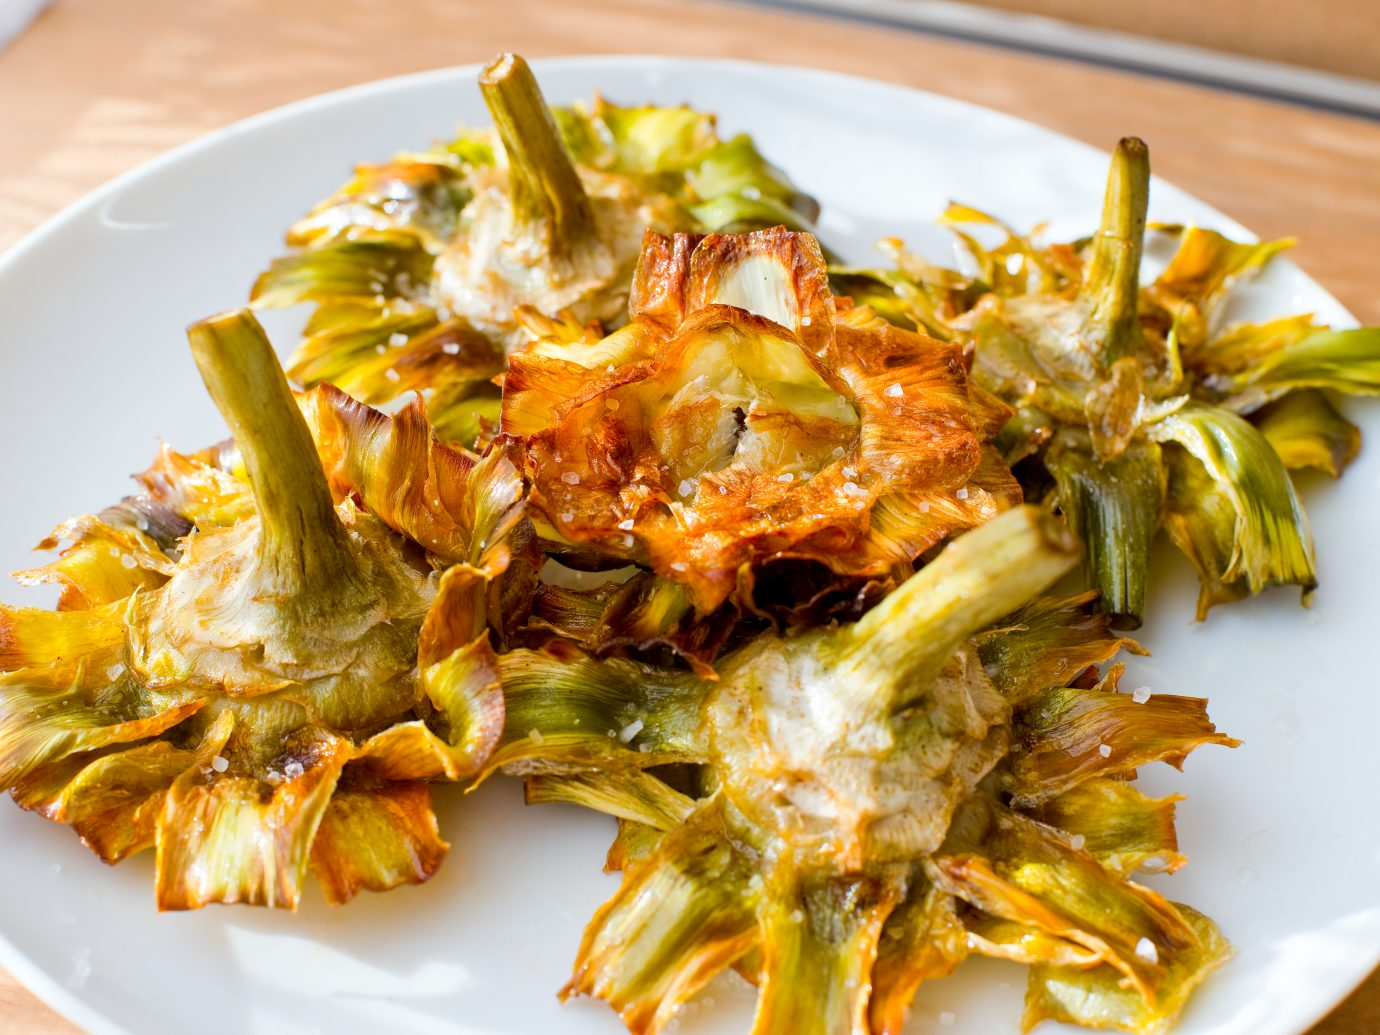 Roman fried artichokes (jewish style) with flakes of sea salt on a wooden table.